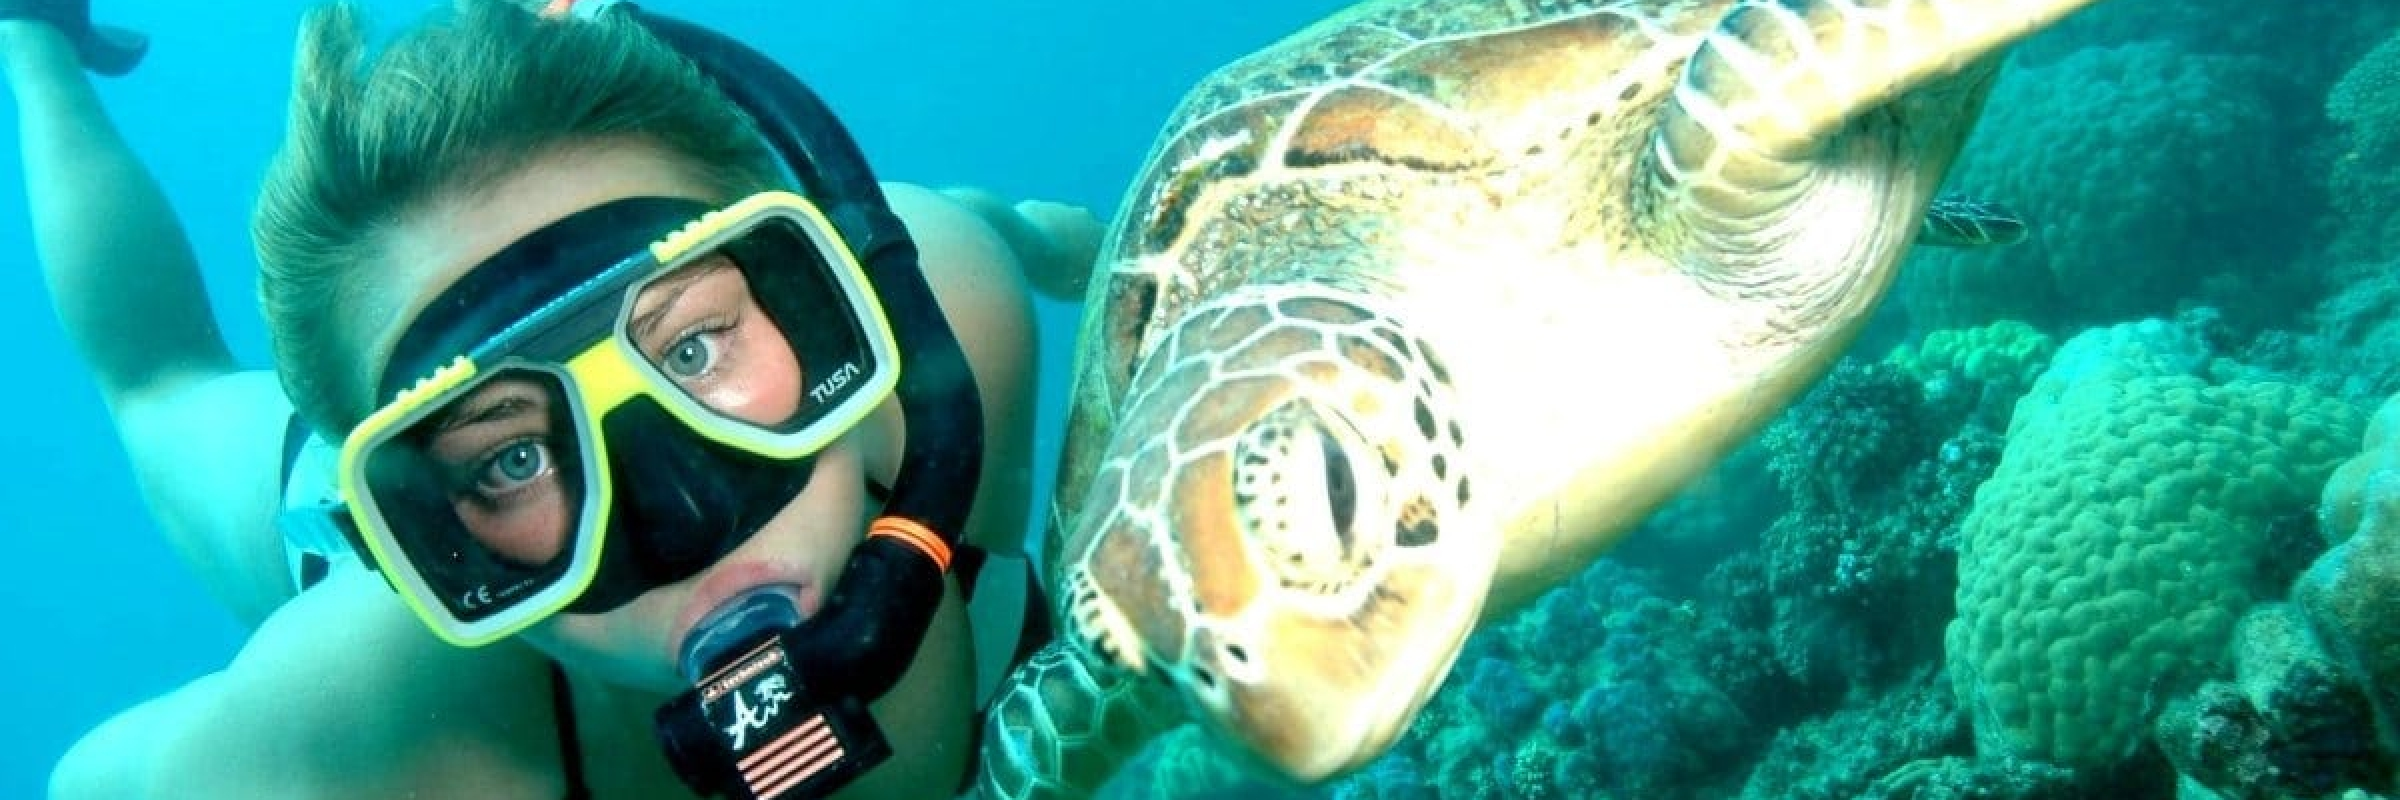 Big-Fury-Snorkelling-with-Turtle